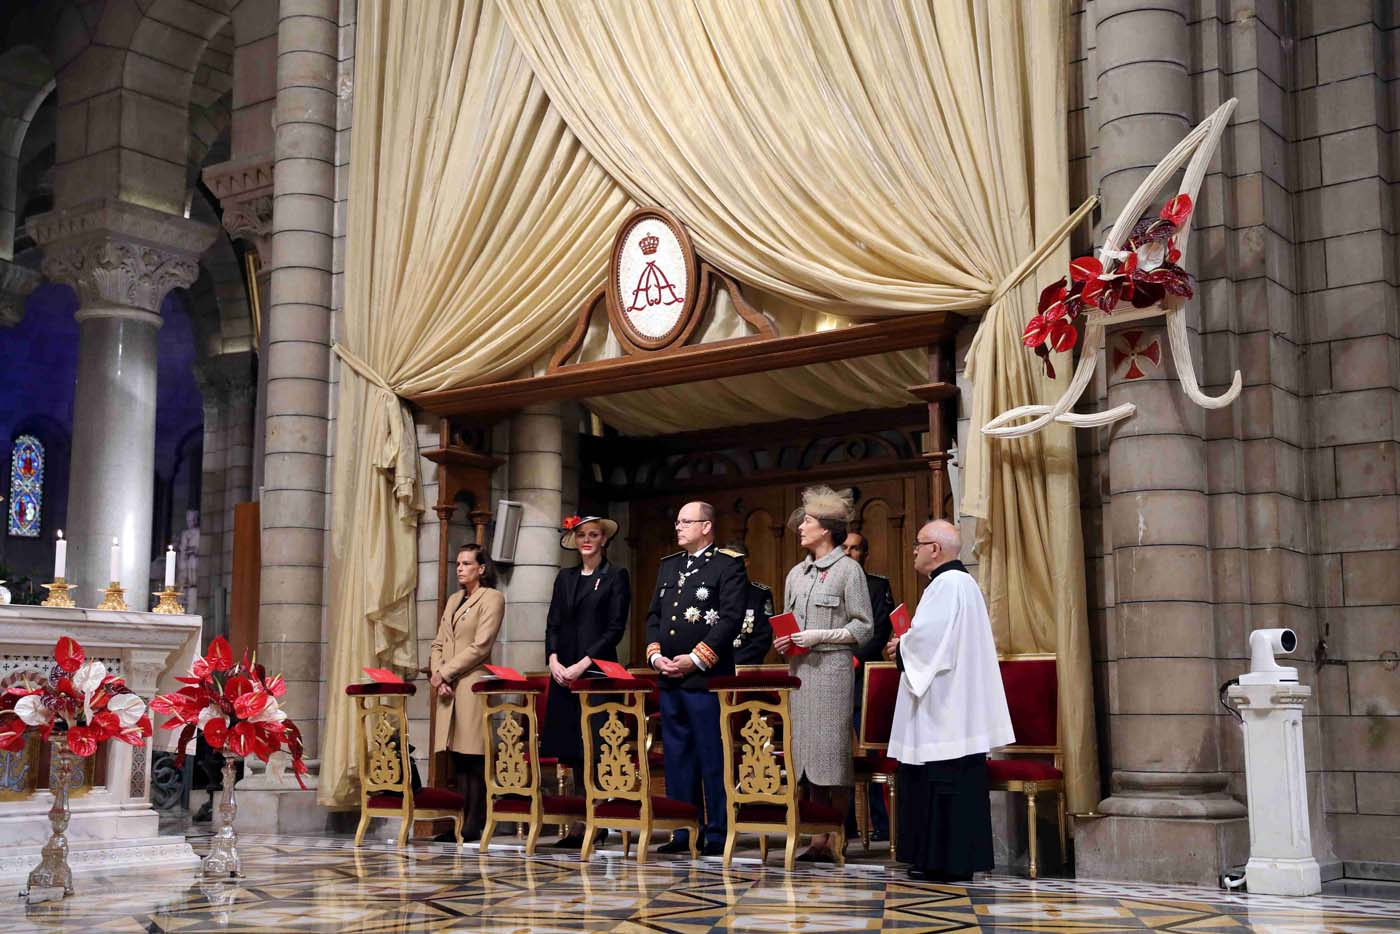 (LtoR) Princess Stephanie of Monaco, Princess Charlene of Monaco, Prince Albert II of Monaco and Princess Caroline of Hanover attend a mass at the Saint Nicholas Cathedral during the celebrations marking Monaco's National Day, on November 19, 2016 in Monaco. REUTERS/Valery Hache/Pool